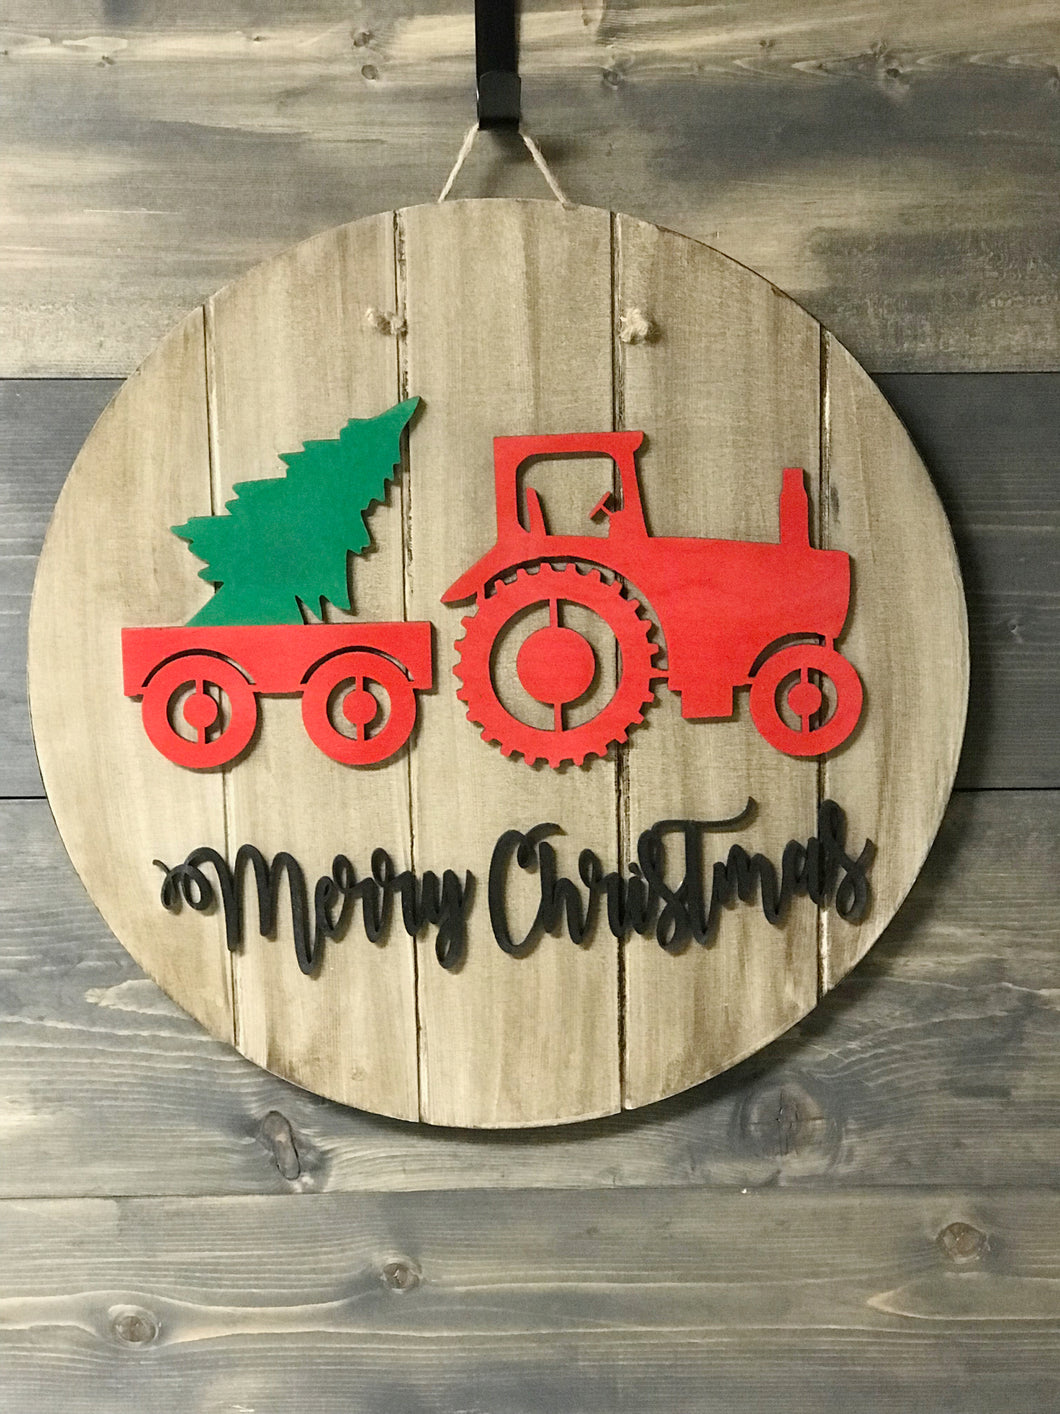 Merry Christmas Wooden Sign Cut-out 15